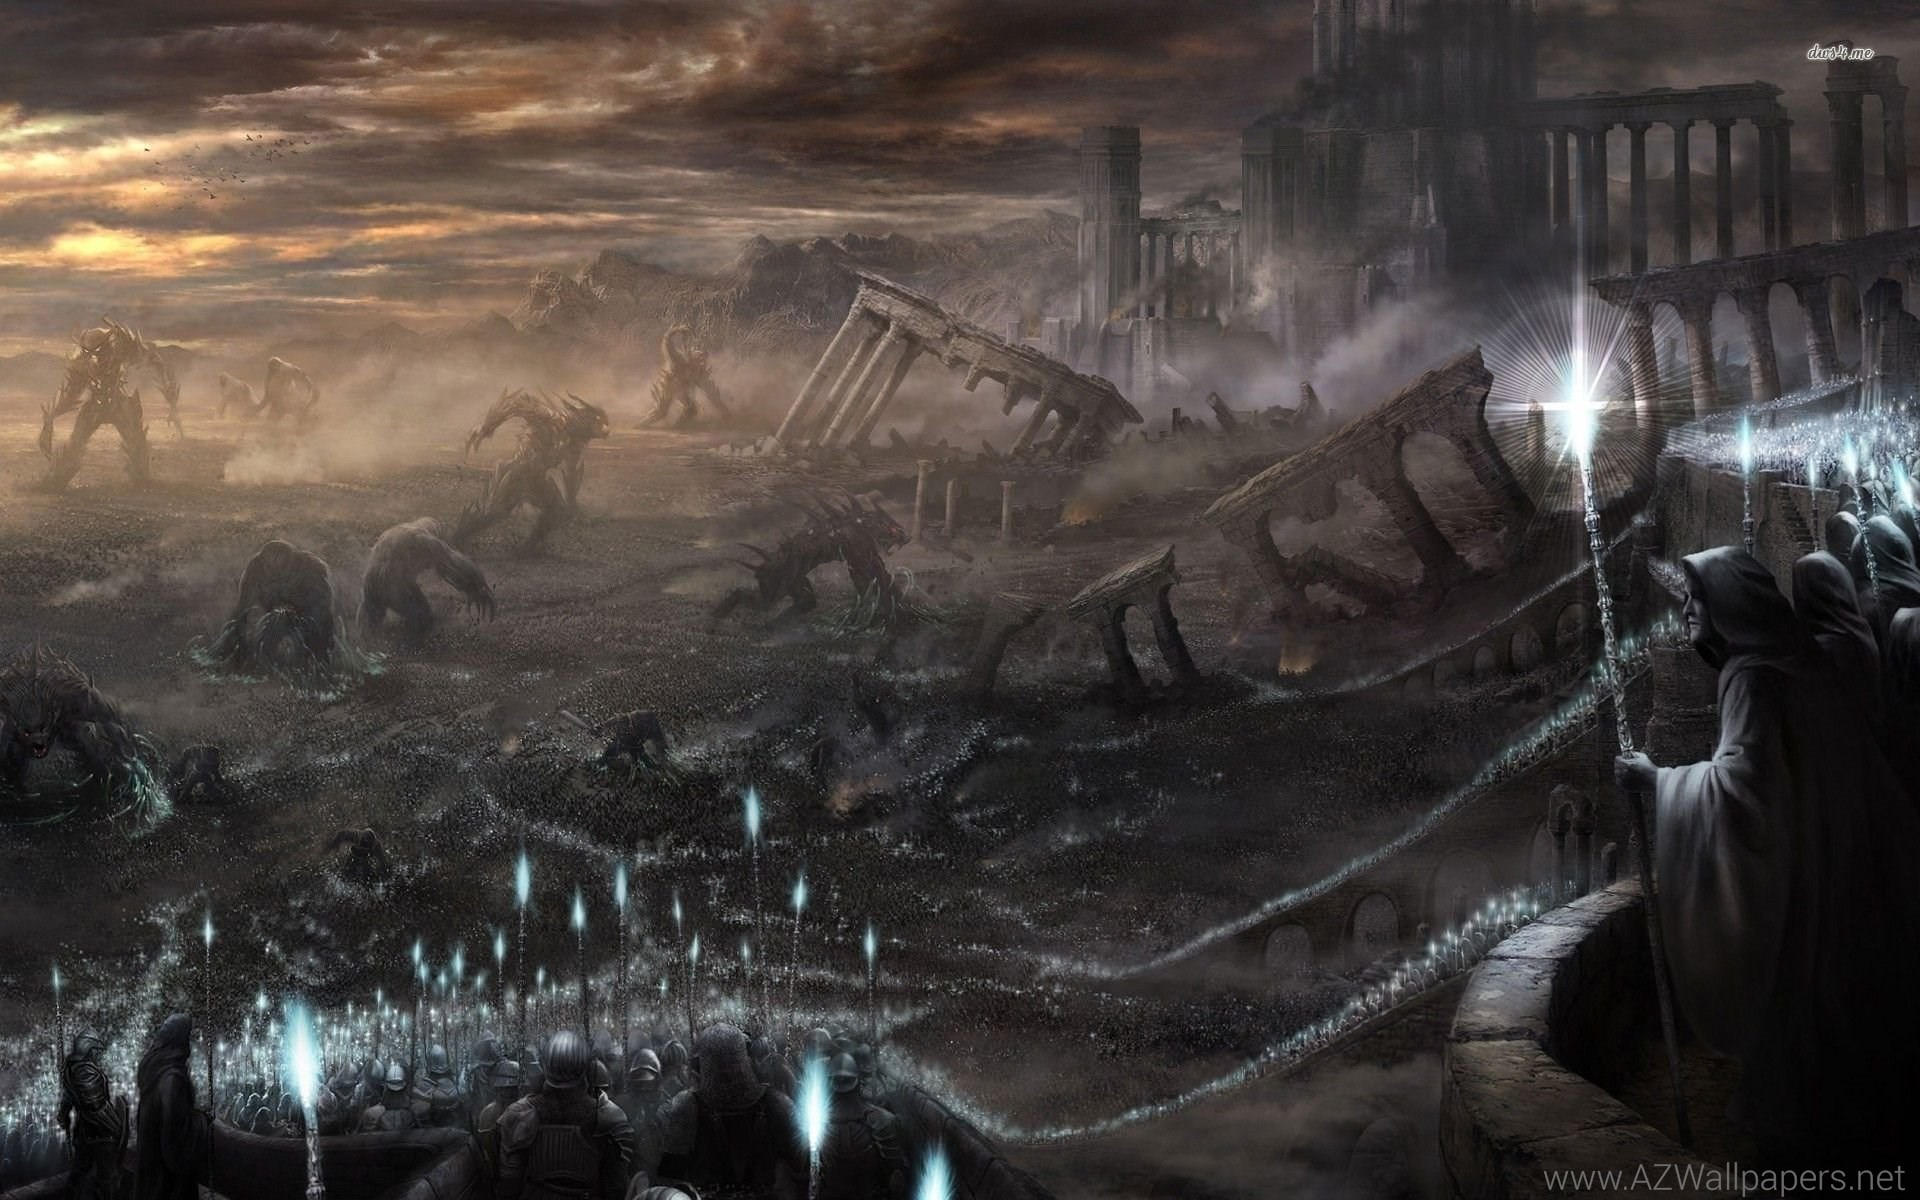 Destroyed City, War, Battle, Army, Fantasy, HD Wallpapers .